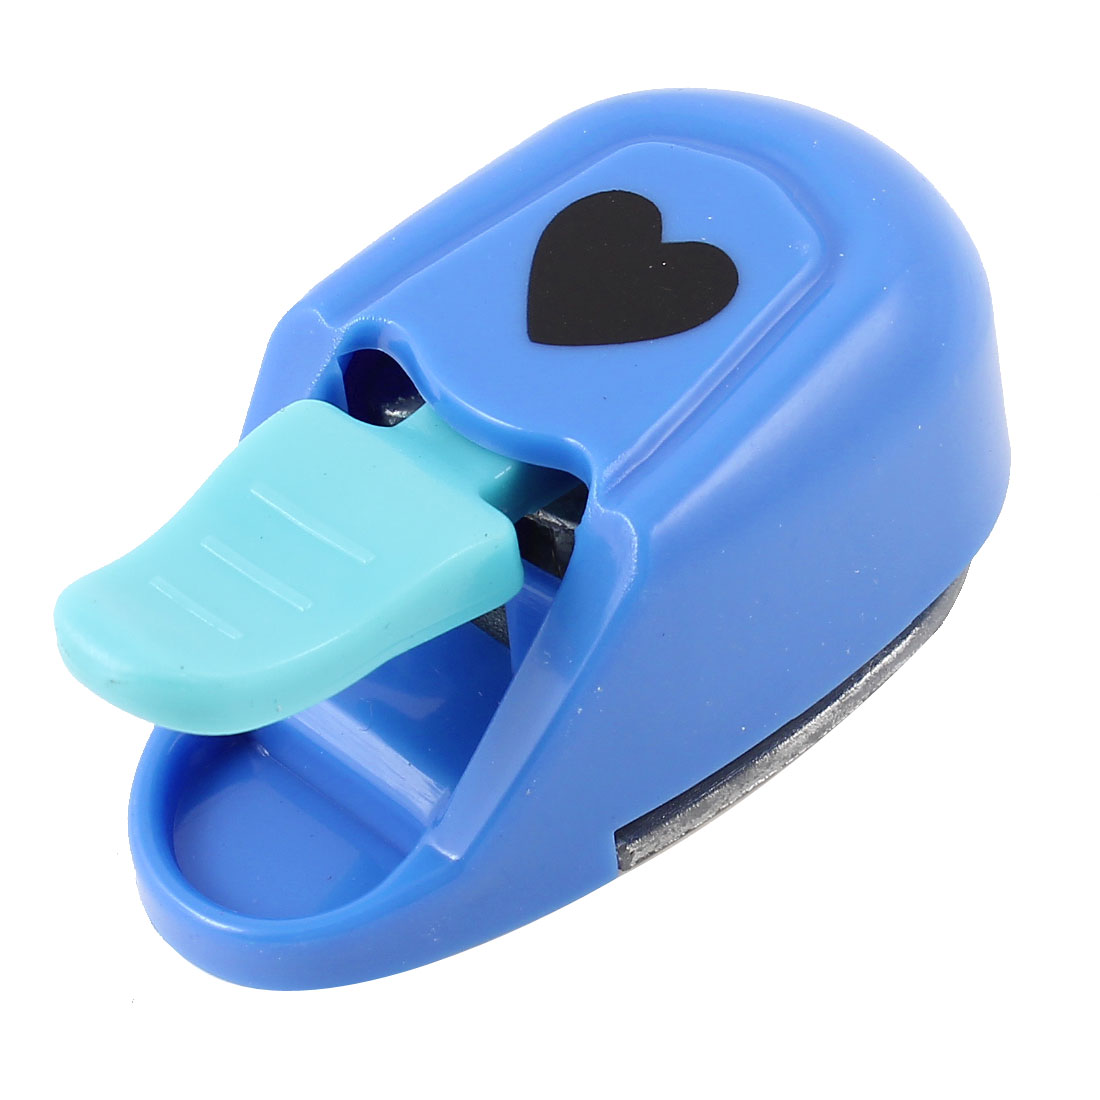 Dark Blue Plastic Coated Heart Pattern Cutout Paper Shaper Card Making Craft Punch Punching Tool